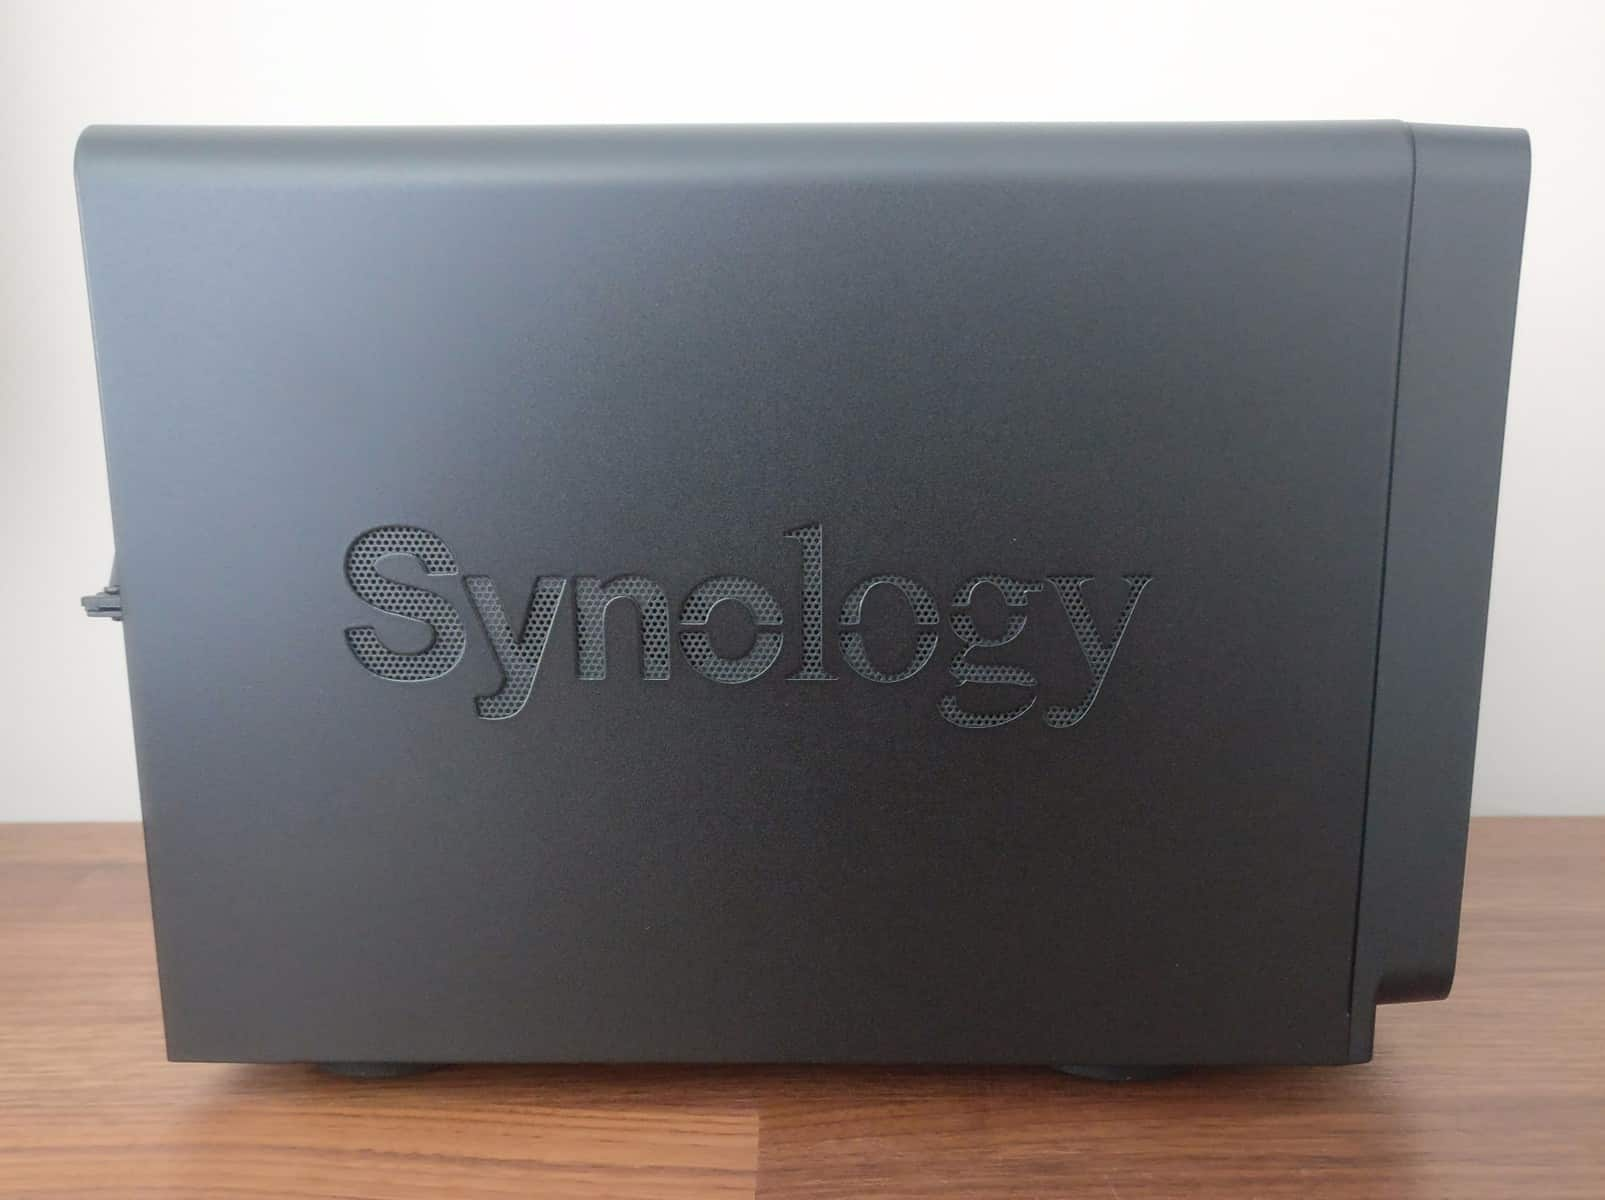 Synology-DS1517-Screens30 Synology DS1517+ 5 Bay NAS Review